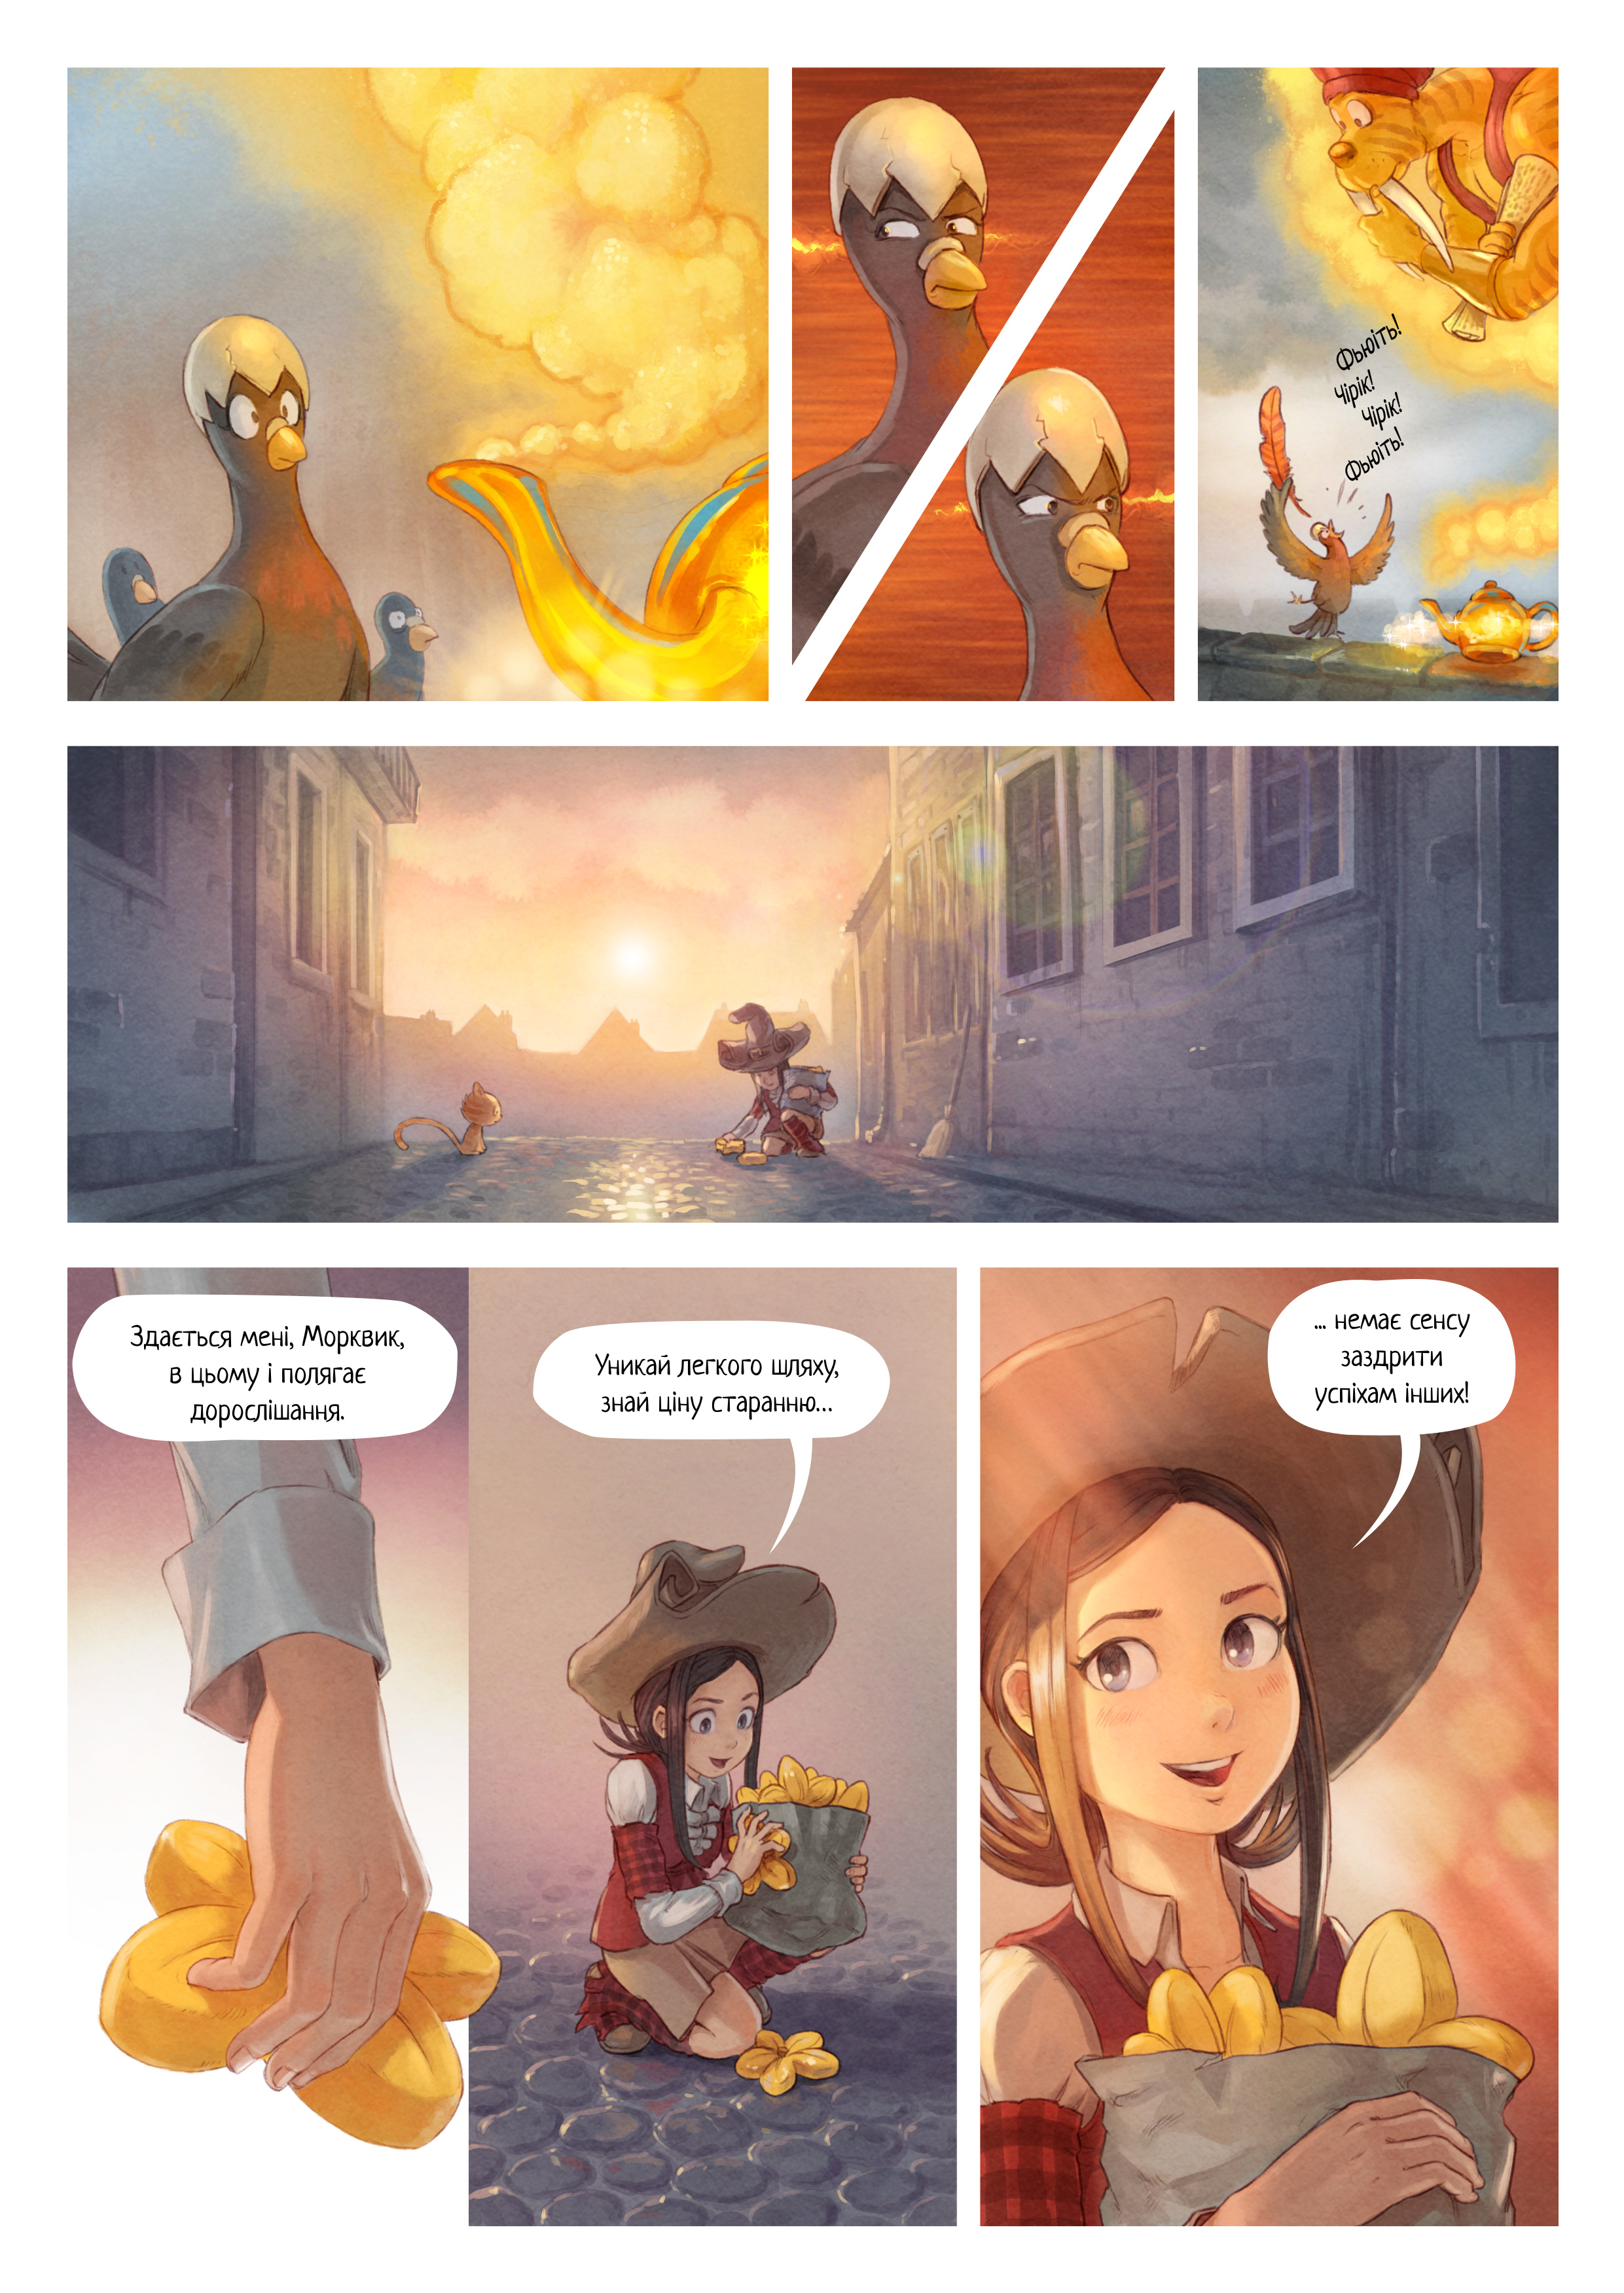 A webcomic page of Pepper&Carrot, епізод 23 [uk], стор. 6